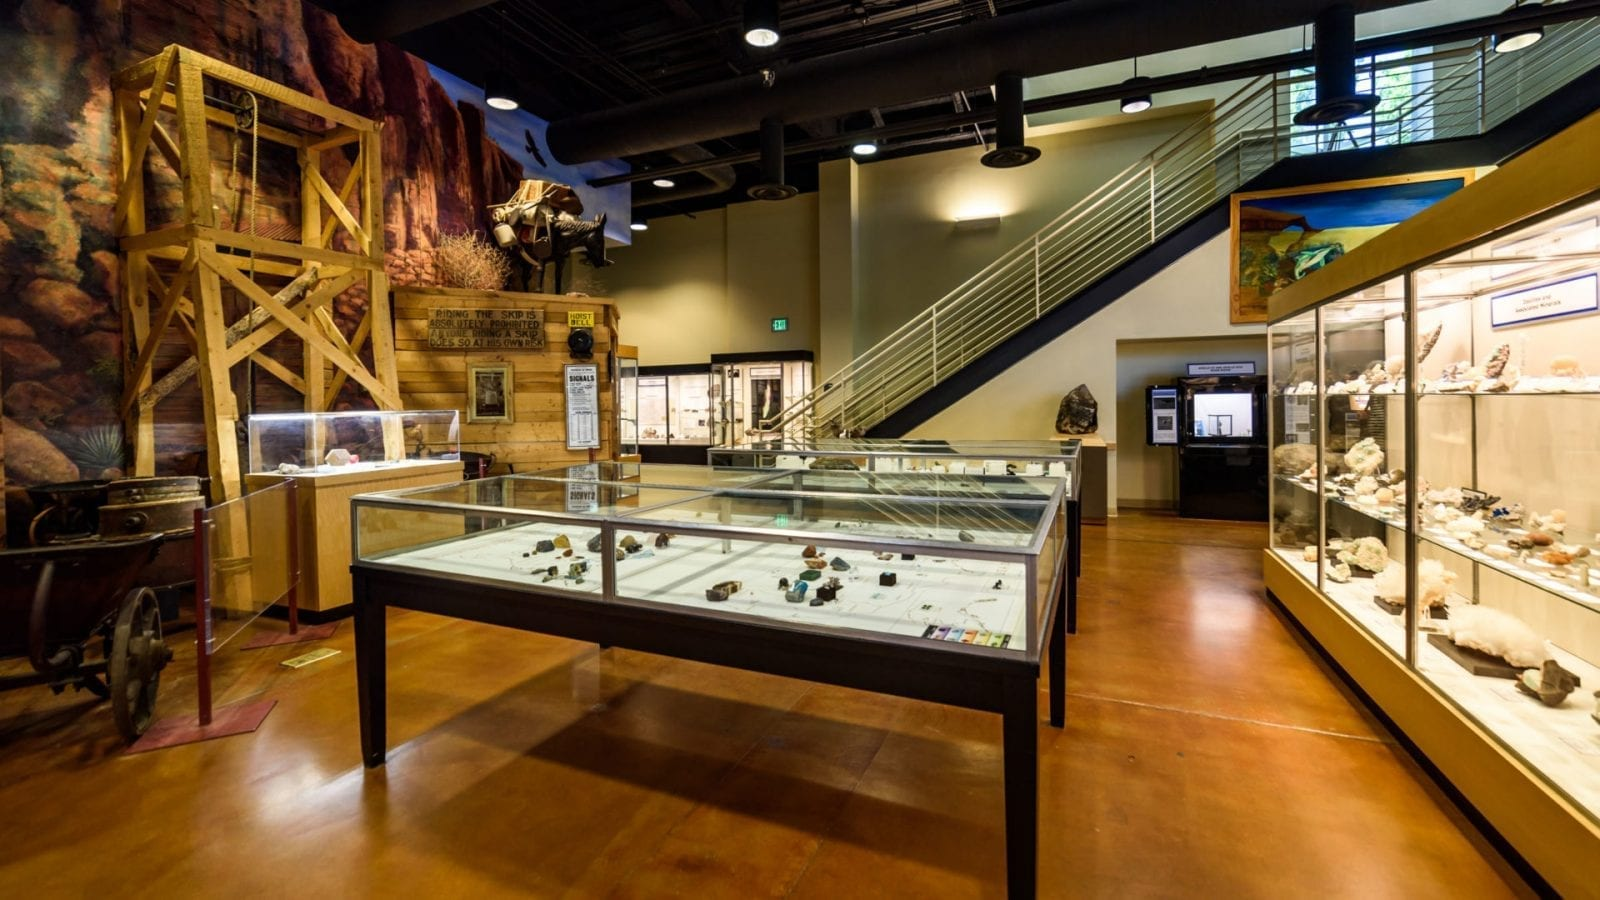 Image of the showcases at the Mines Museum in Golden, Colorado